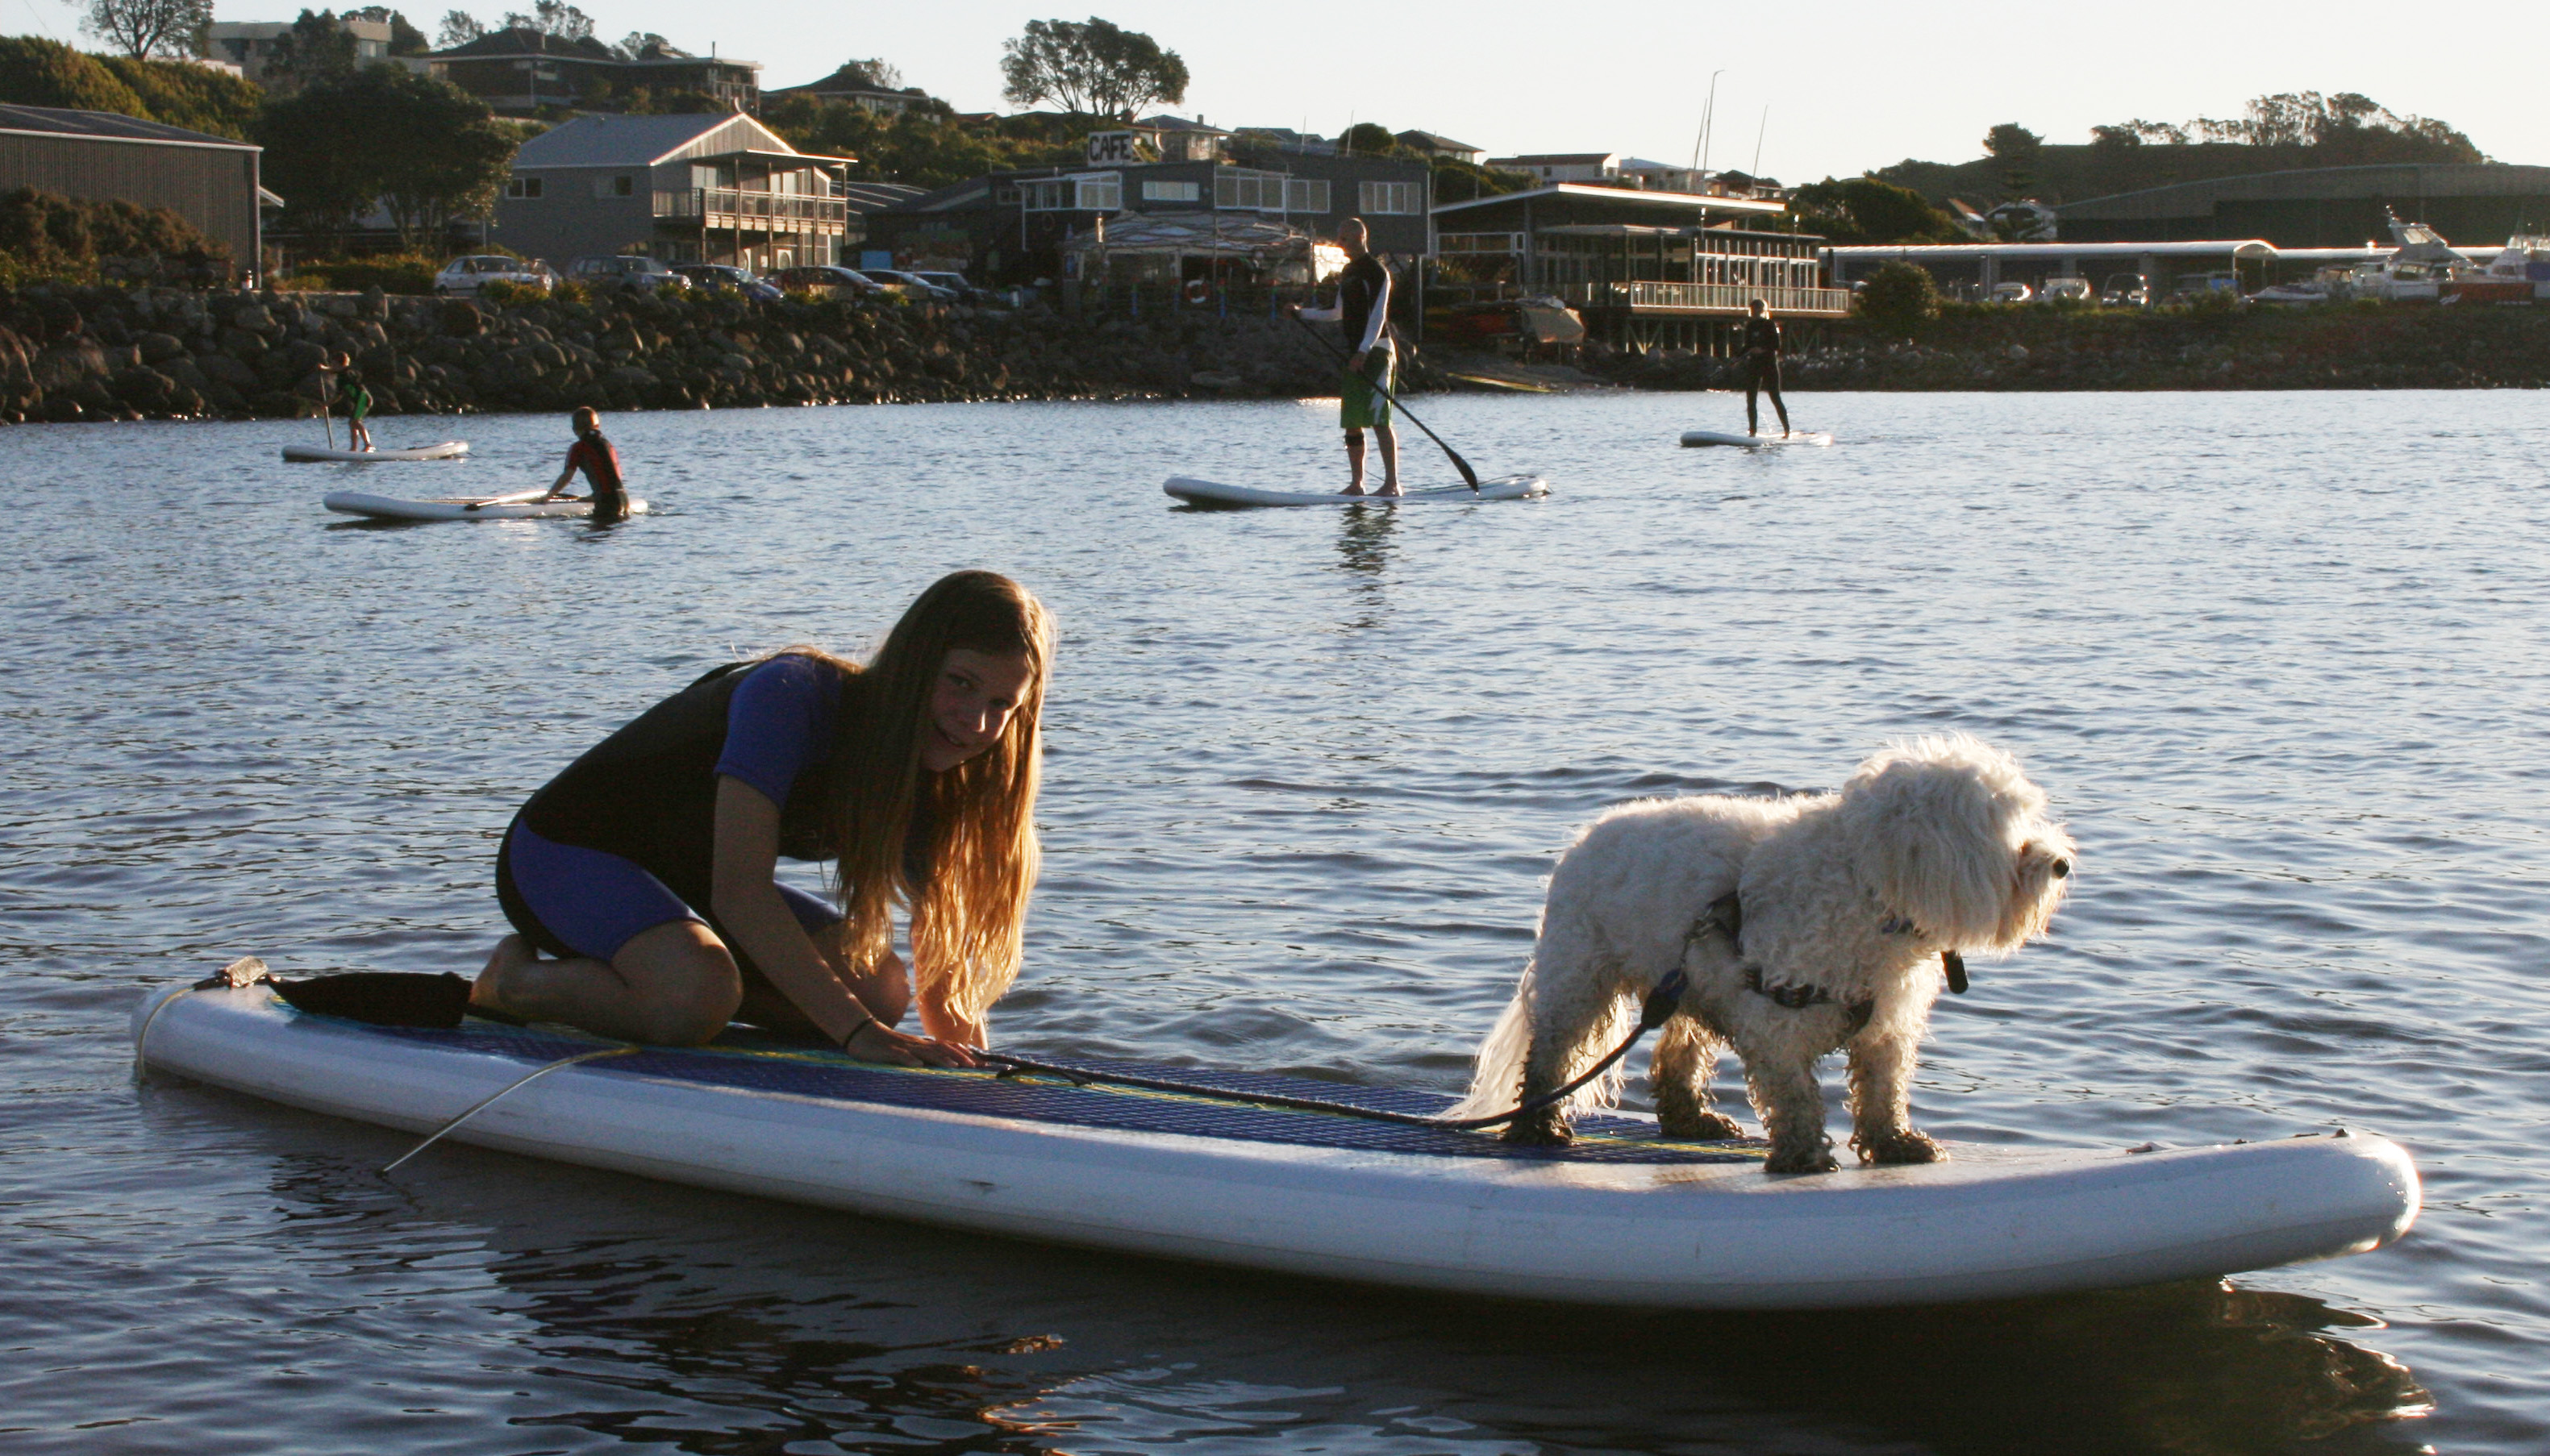 ANIMAL FUN: Ruby Hosking, 11, takes her furry friend Monty for a paddleboard ride during a public give it a go session in New Plymouth's Breakwater Bay. Photo: Supplied